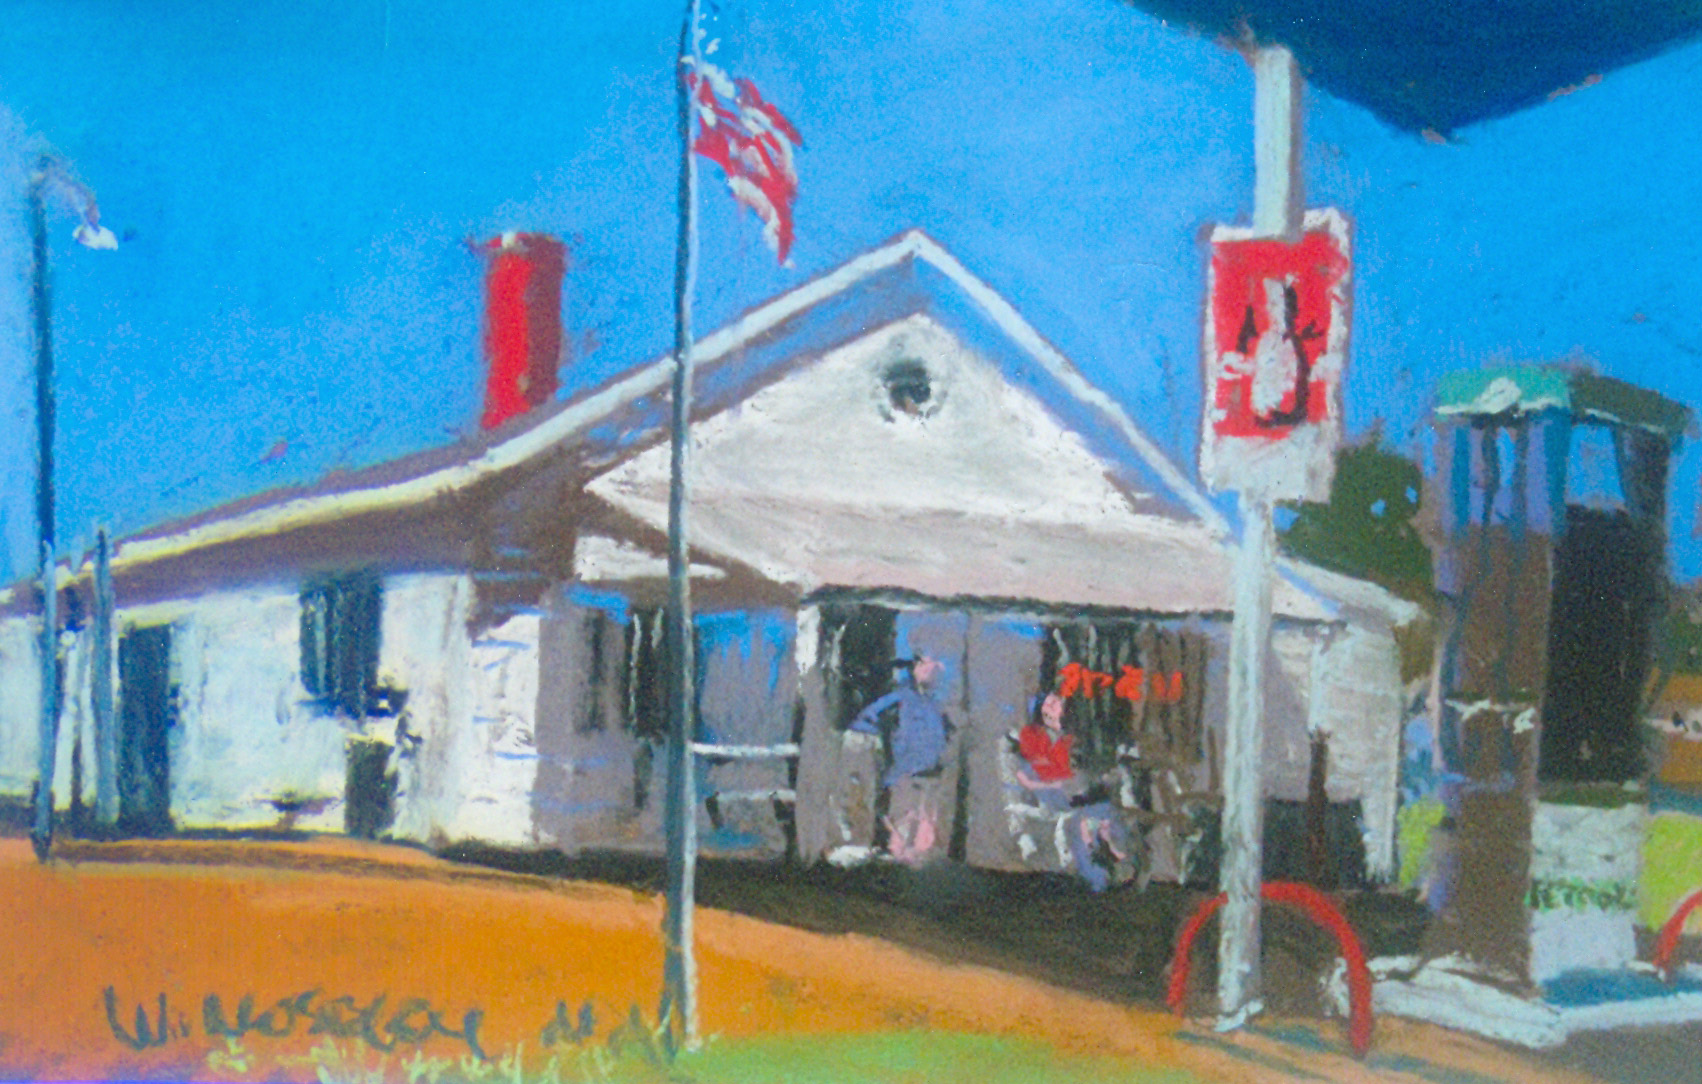 Country stores like Ebony General captured in this painting by Bill Moseley still serve as important pillars of the community.